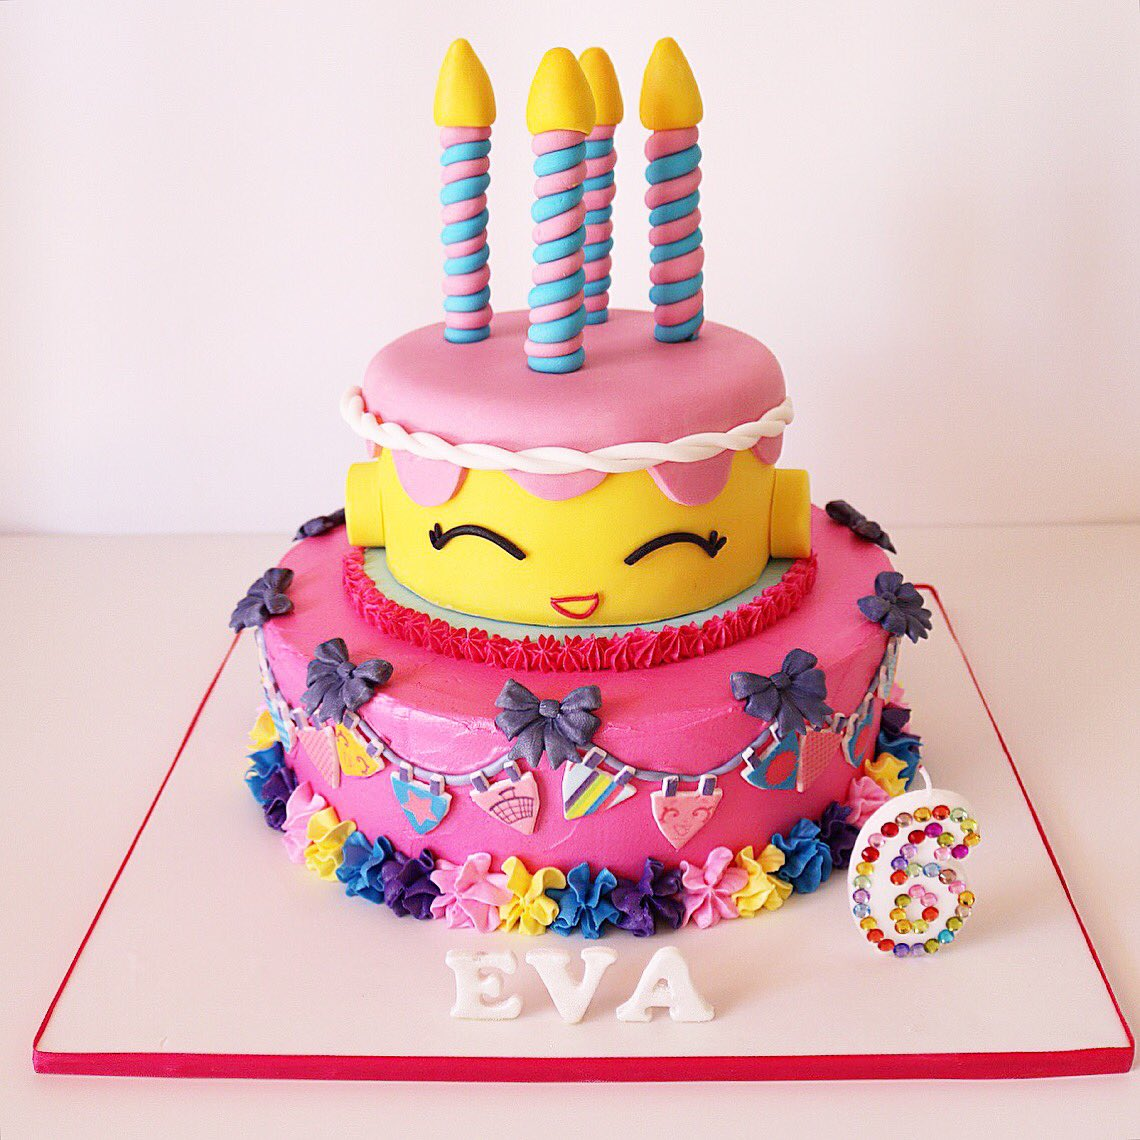 Buttercreme Lane on Twitter Shopkins Birthday Cake just for Eva